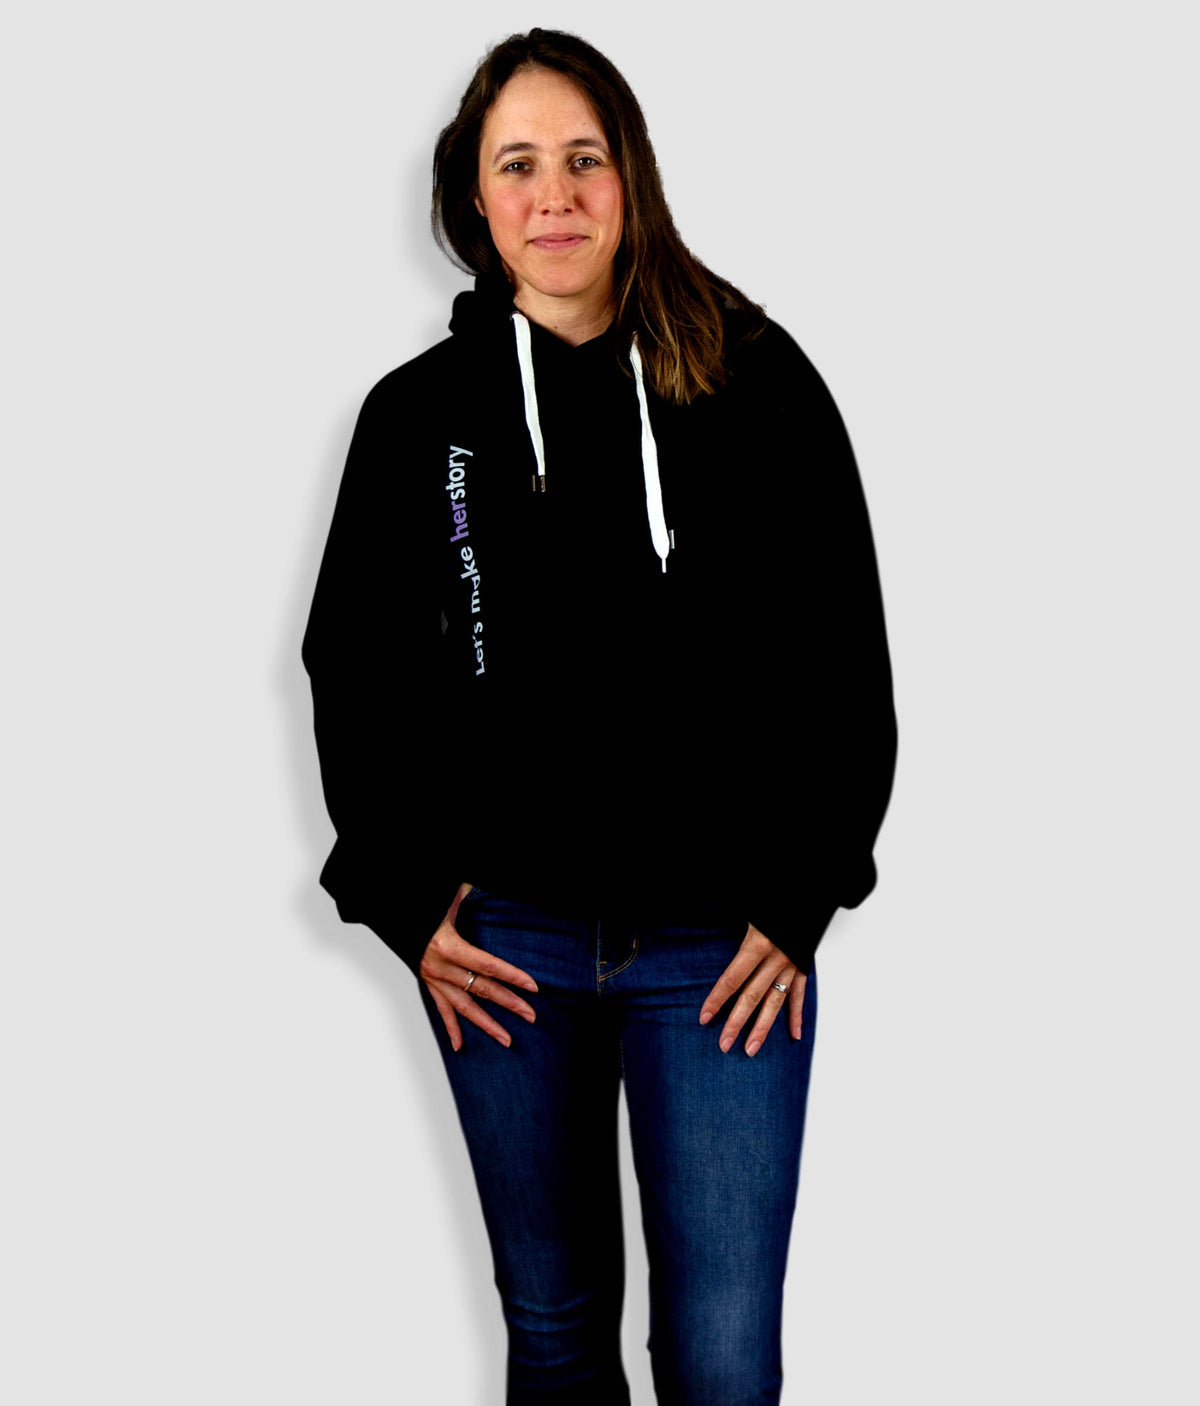 Unisex Organic Cotton Feminist Hoodie - Let's Make Herstory, 90Degrees